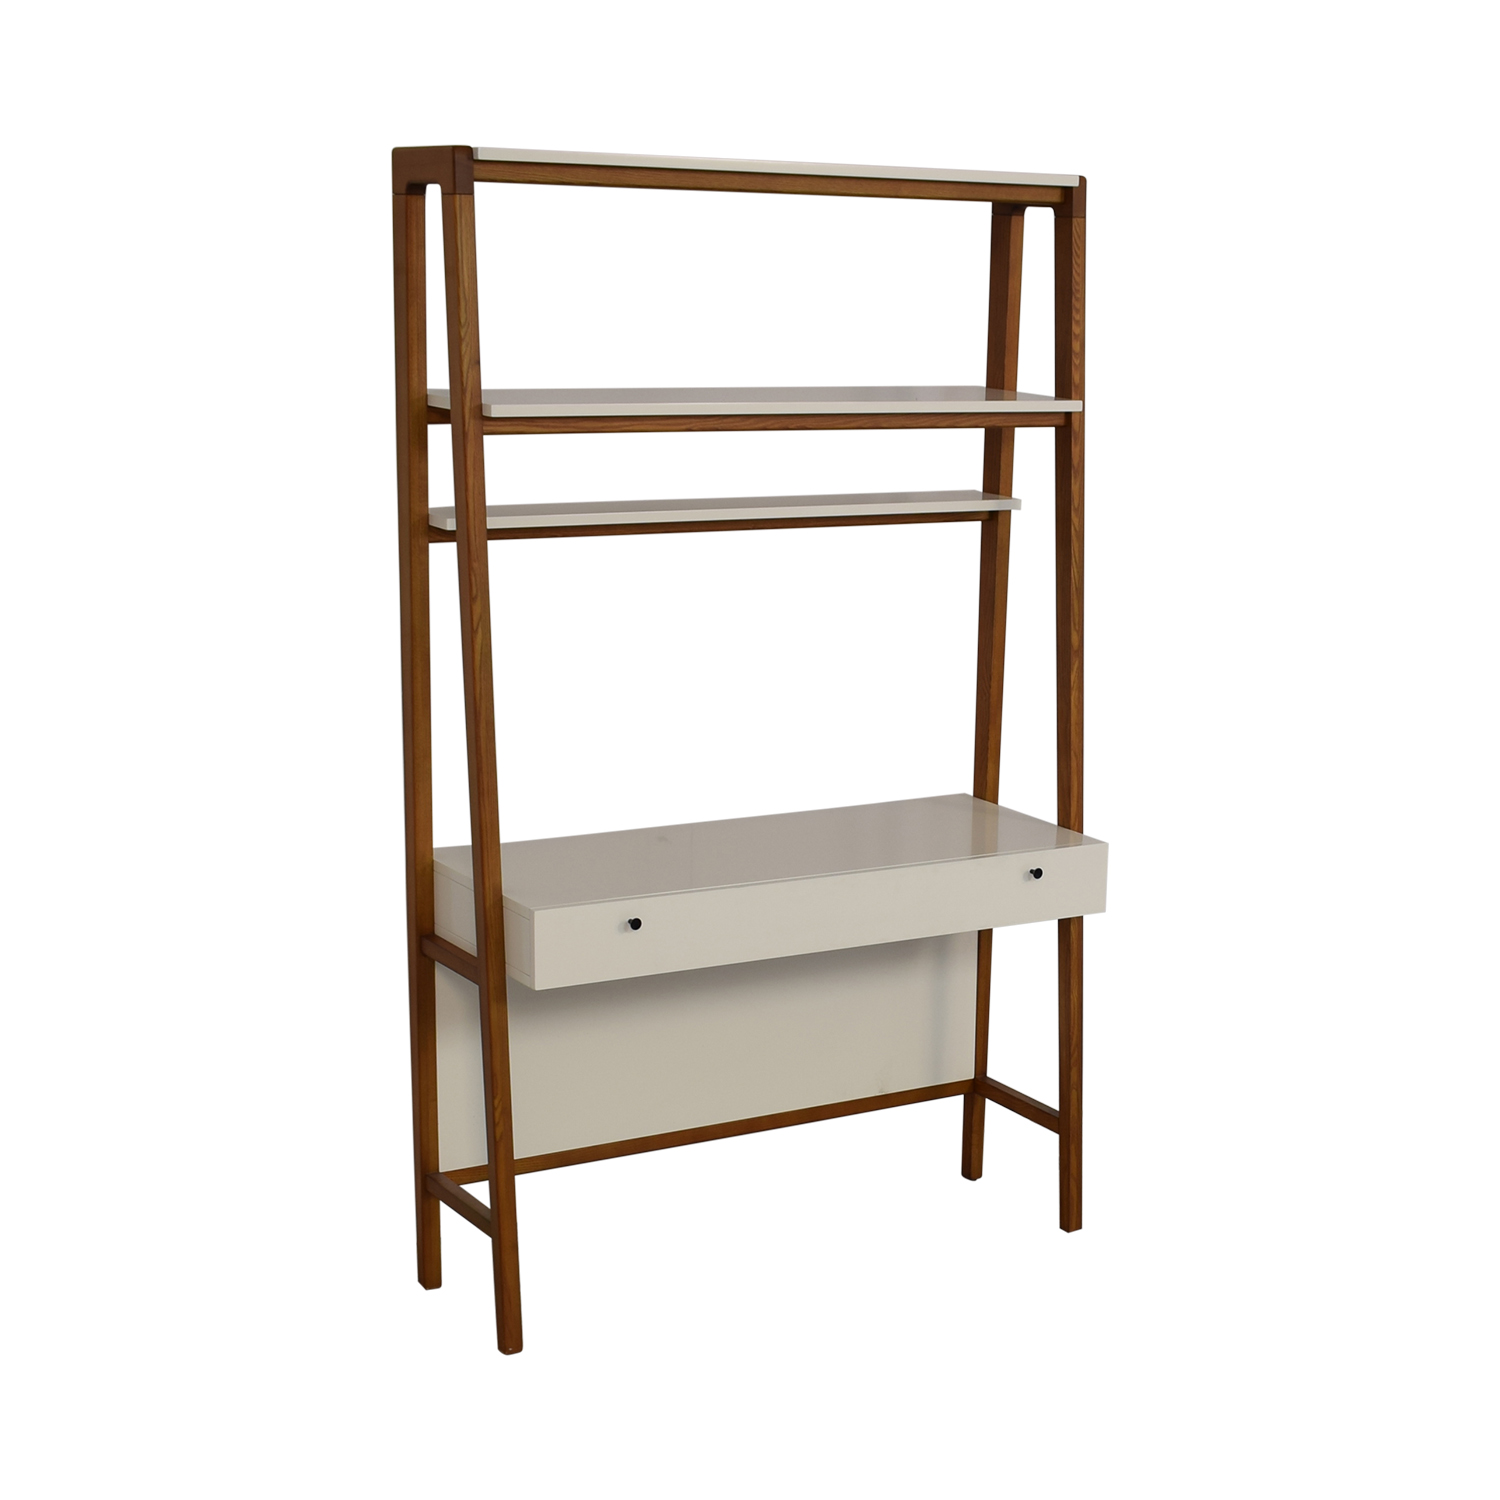 West Elm West Elm Modern Wall Desk for sale